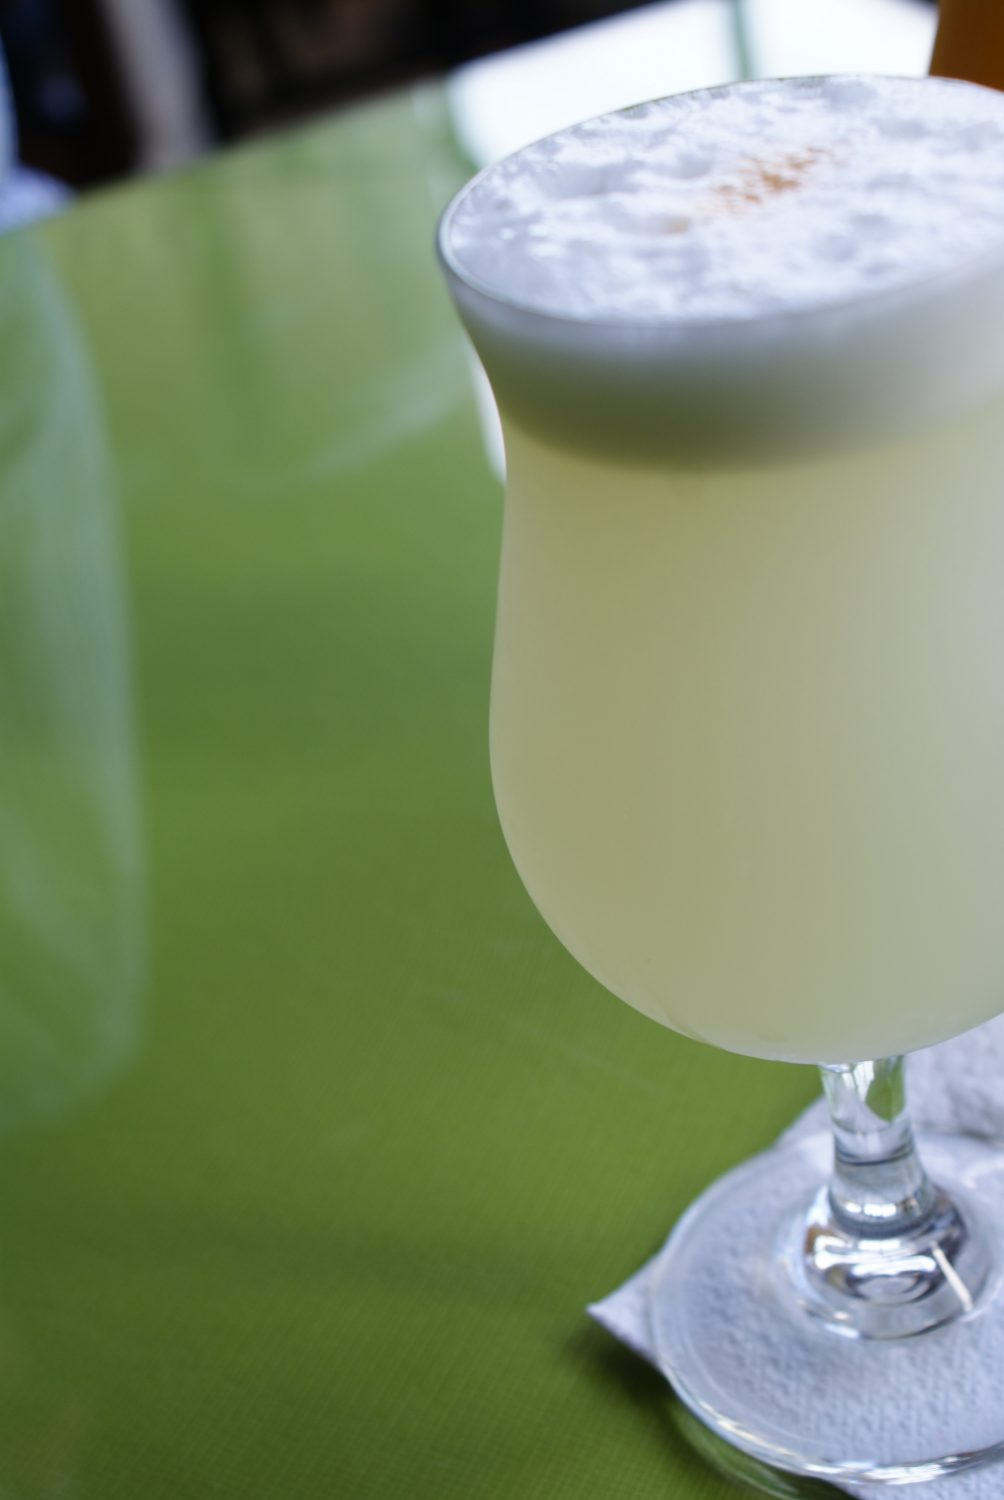 Pisco Sours I South America Travel Bucket List. 90 Awesome Things to do in South America When Backpacking and Travelling #southamerica #bucketlist #traveldestinations